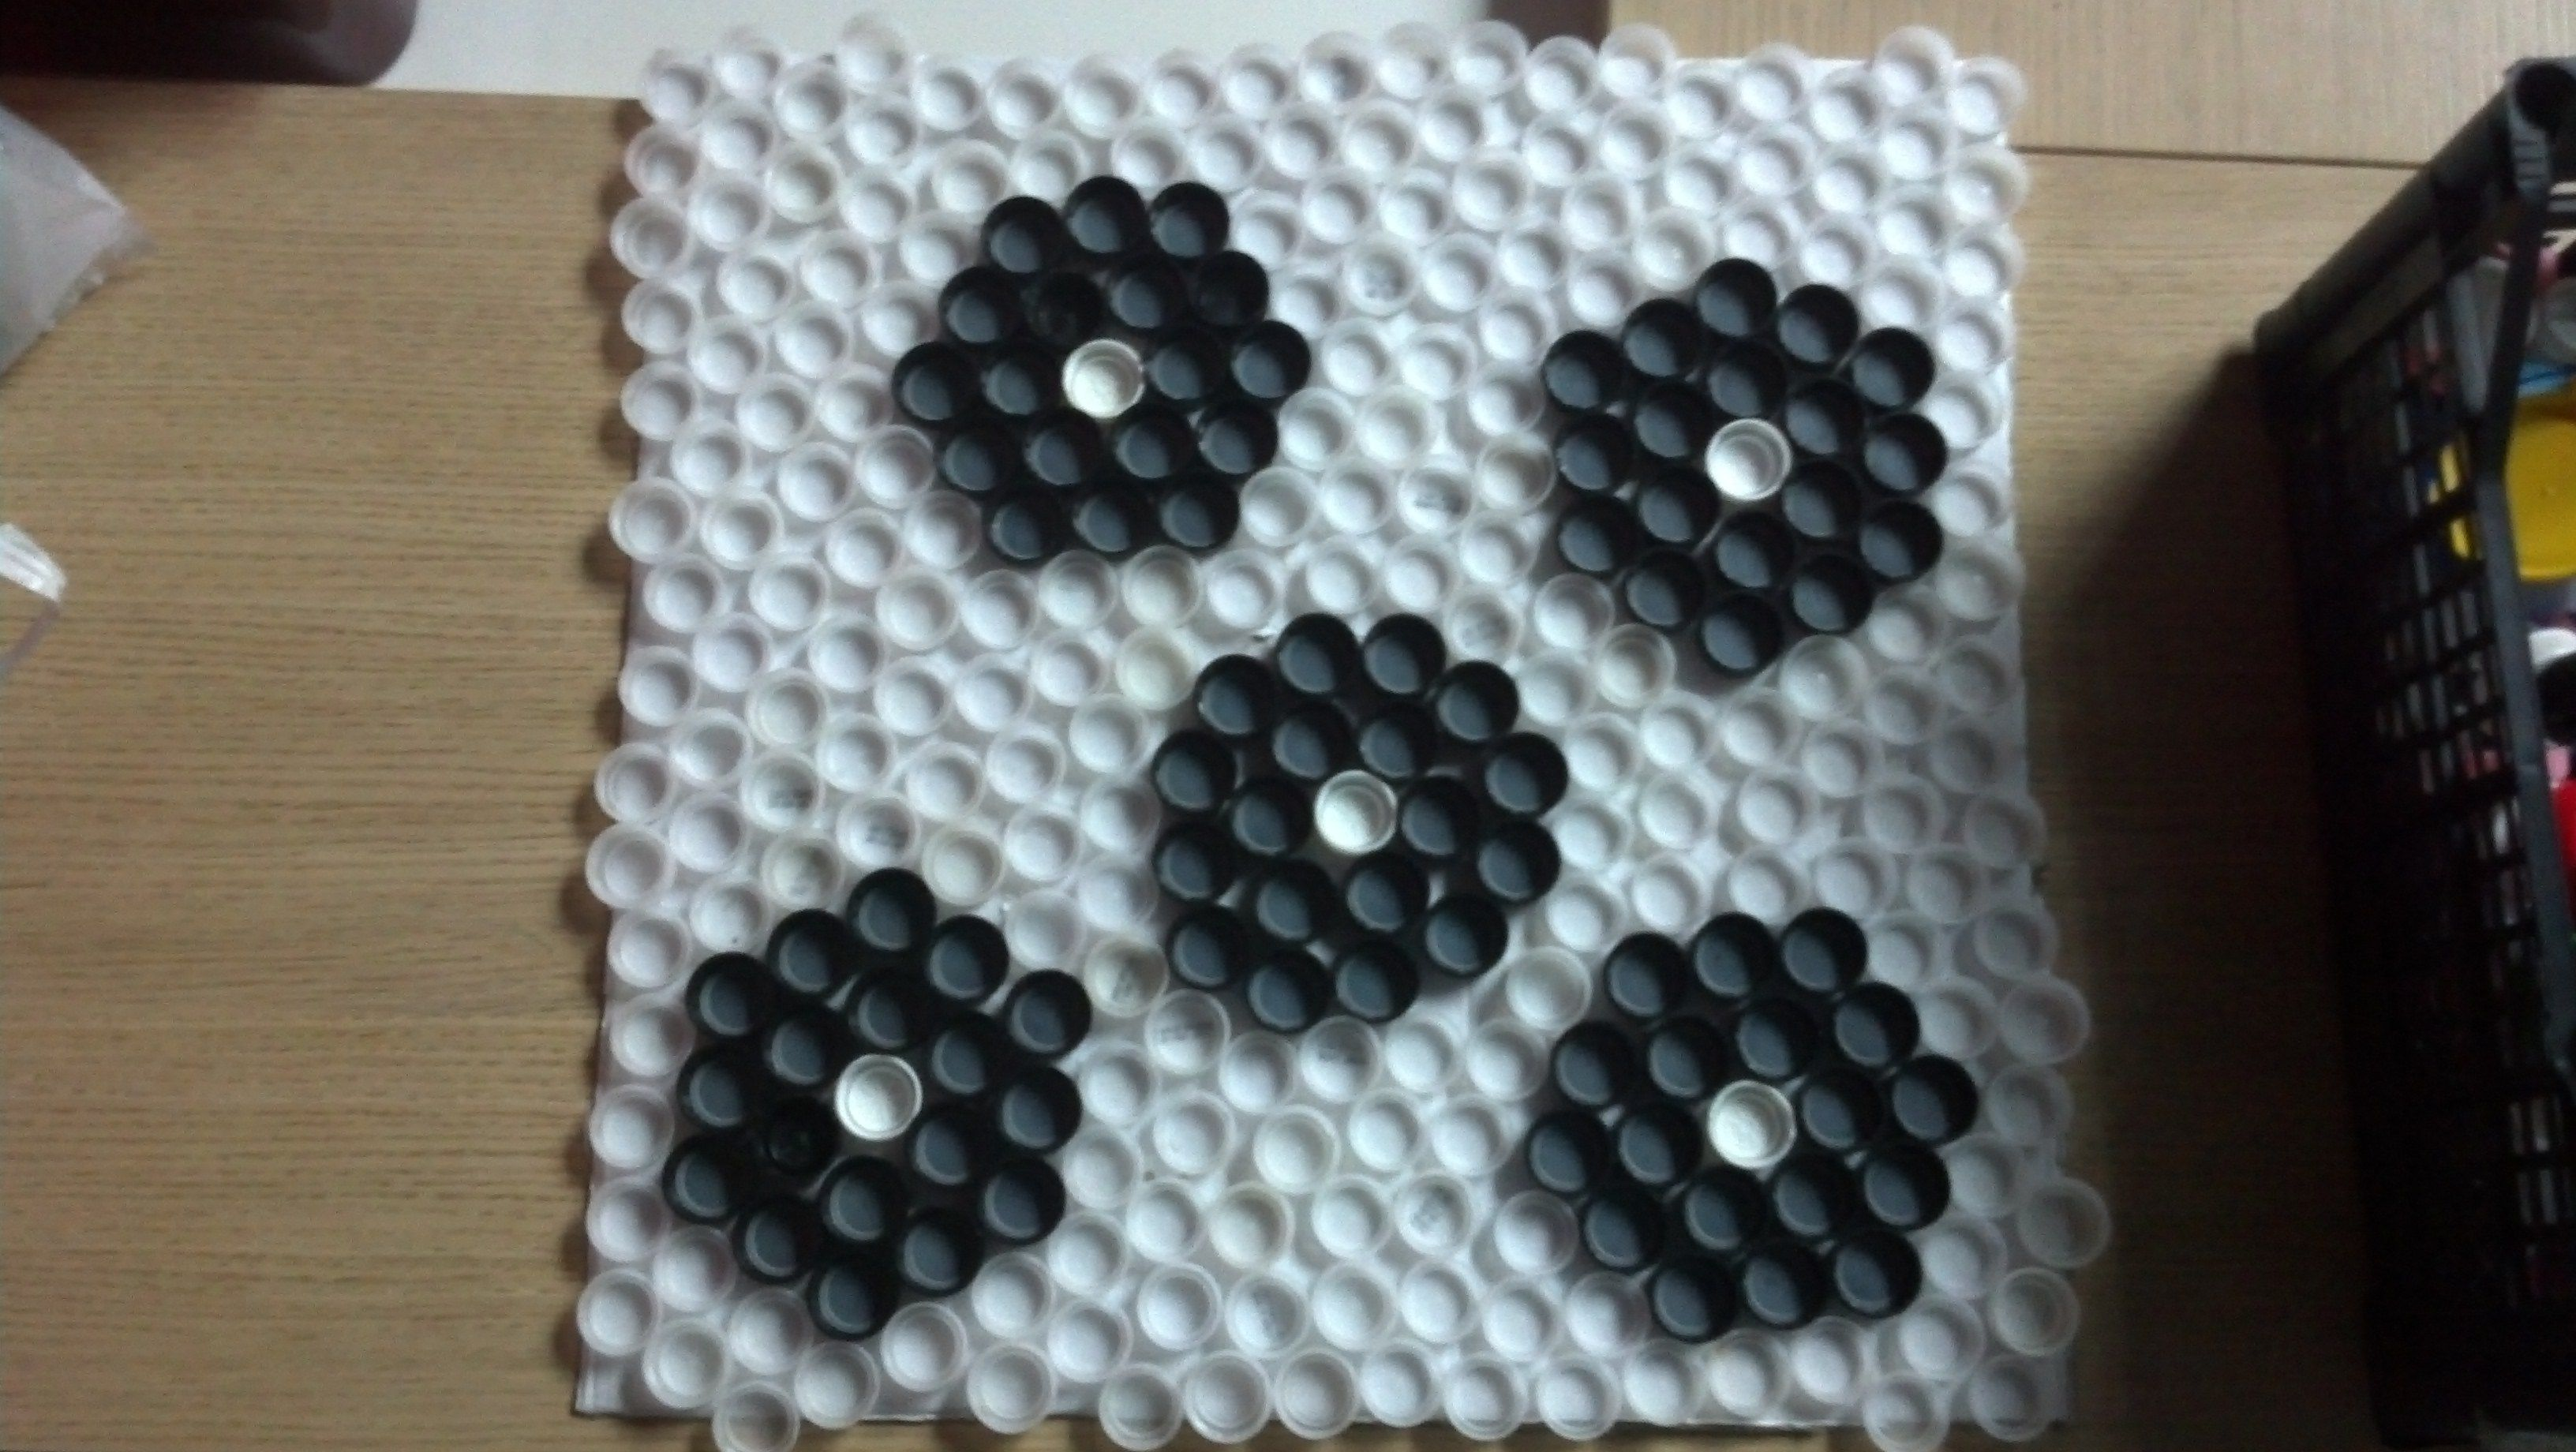 Upcycled mural from plastic bottle caps crafts reuse plastic bottle caps pinterest - Plastic bottle caps crafts ideas ...